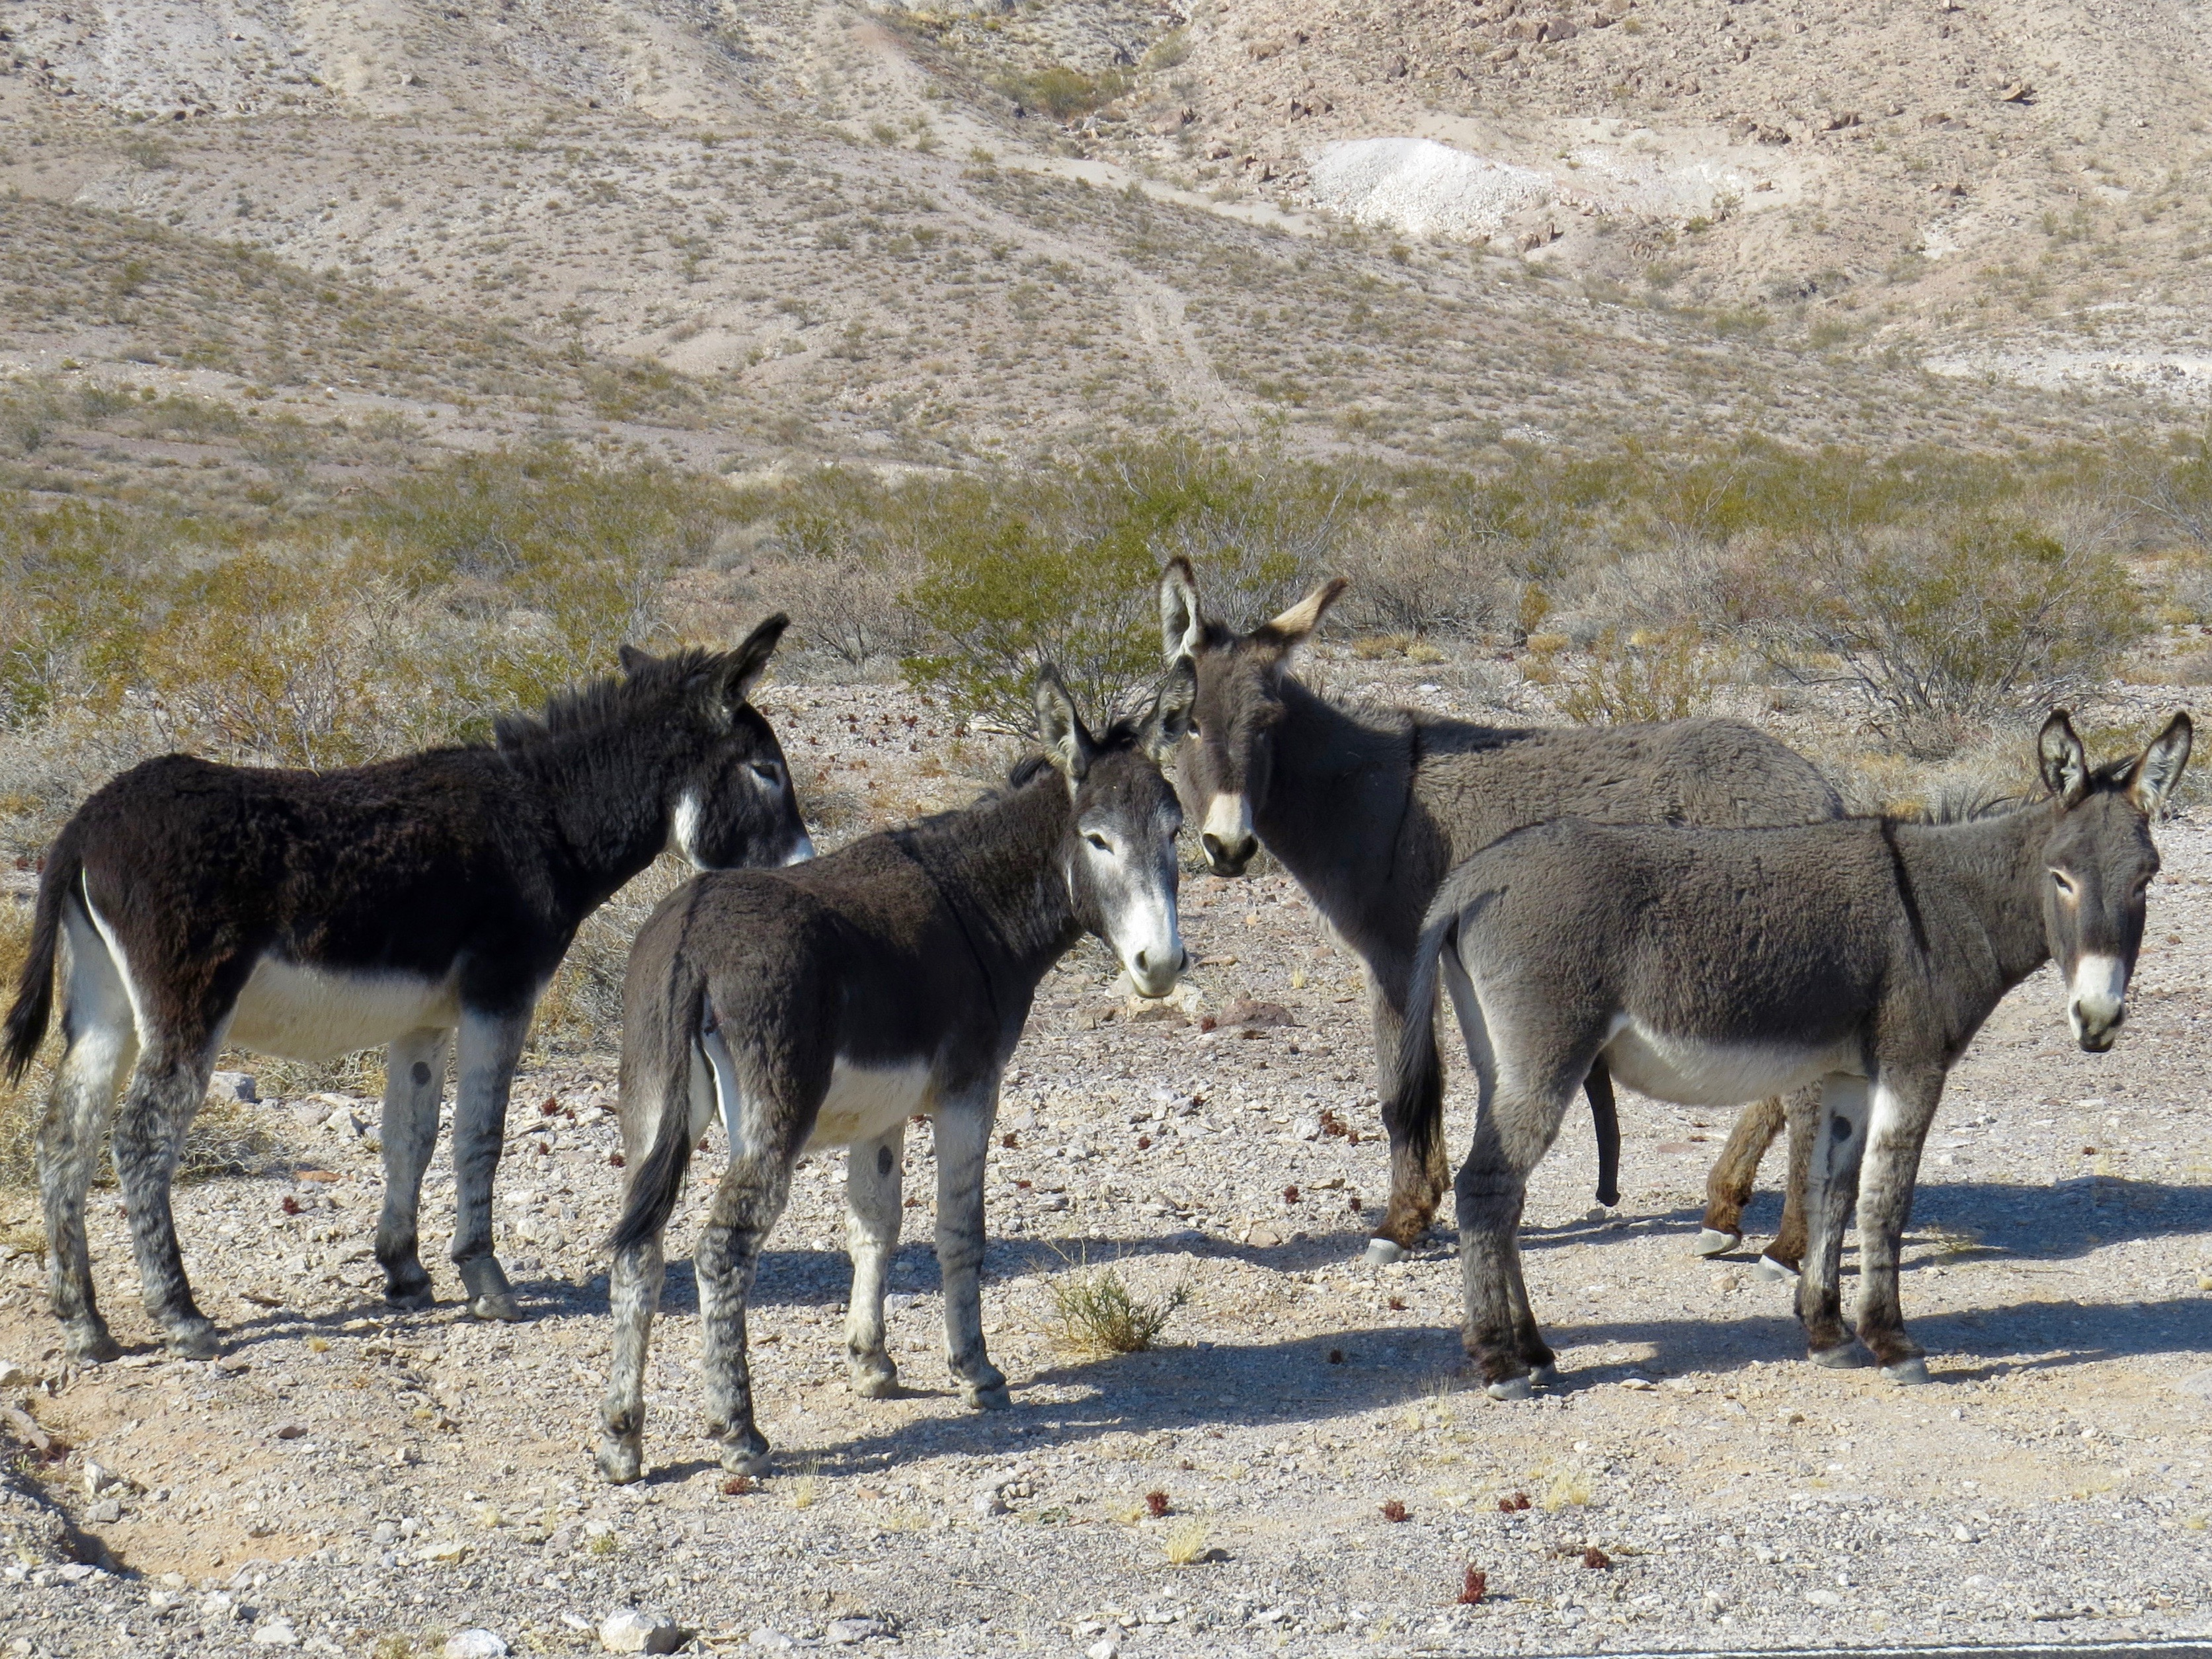 To get to Bishop I needed to drive through Death Valley. In the many years I've been in DVNP, I've never seen feral burros. These animals are descendants of those left behind by prospectors. They are quite handsome, don't you think?